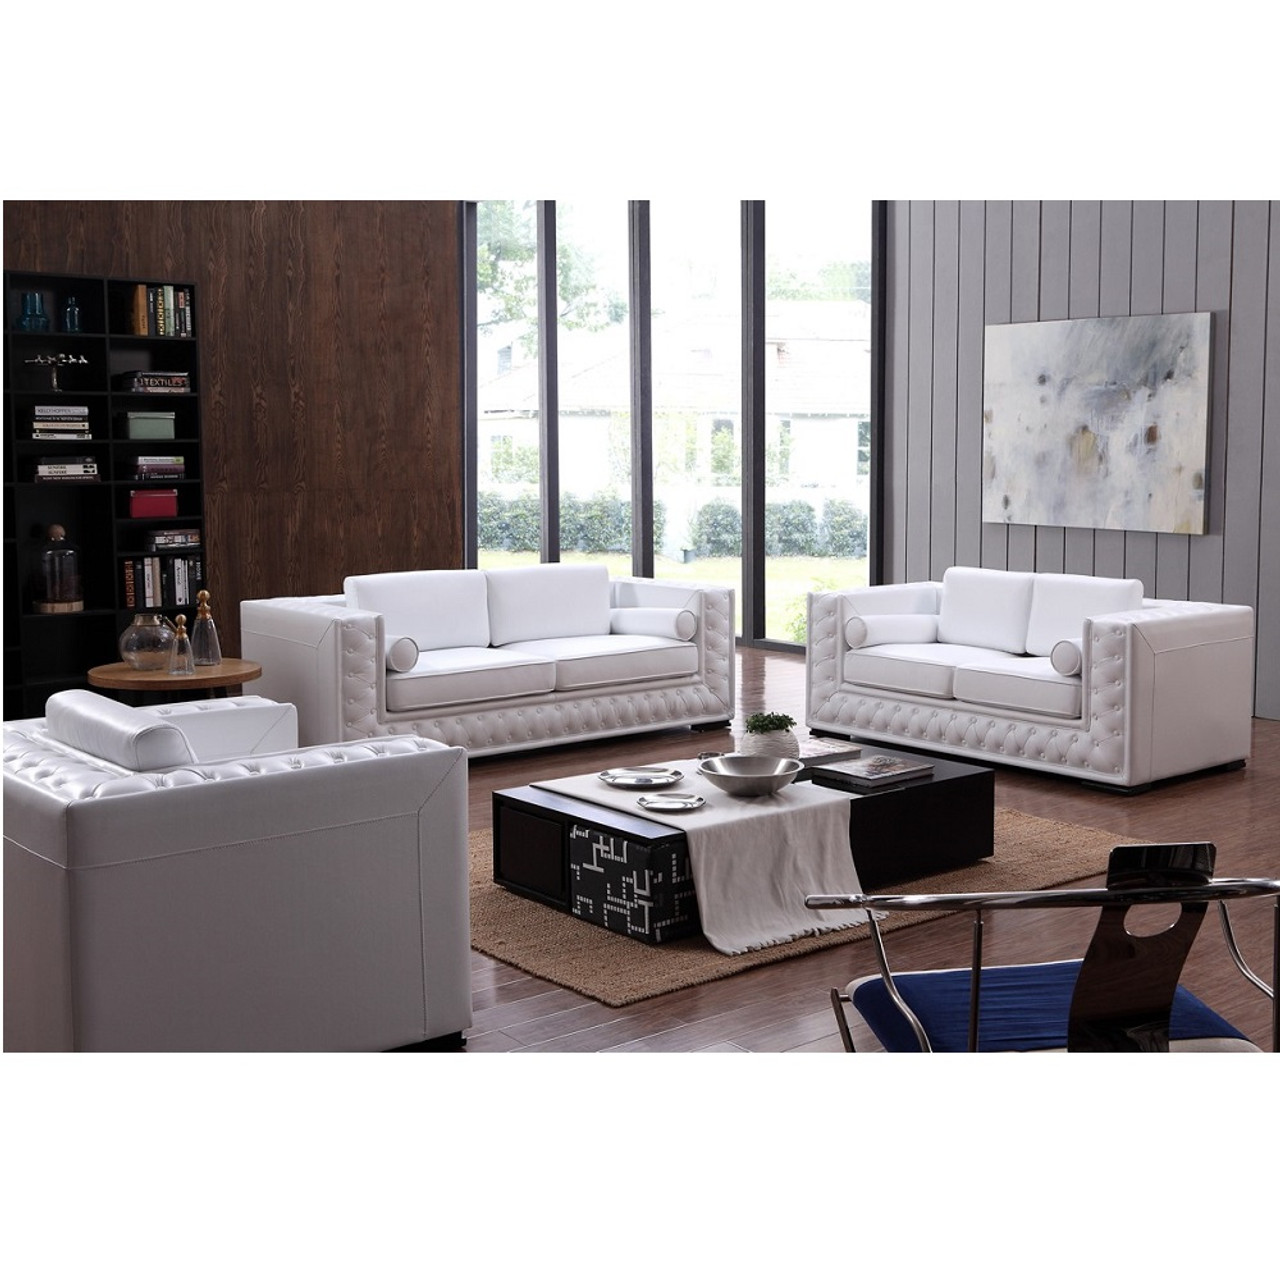 Divani Casa Encore Divani Casa Dublin Modern White Leather Sofa Set W Buttons